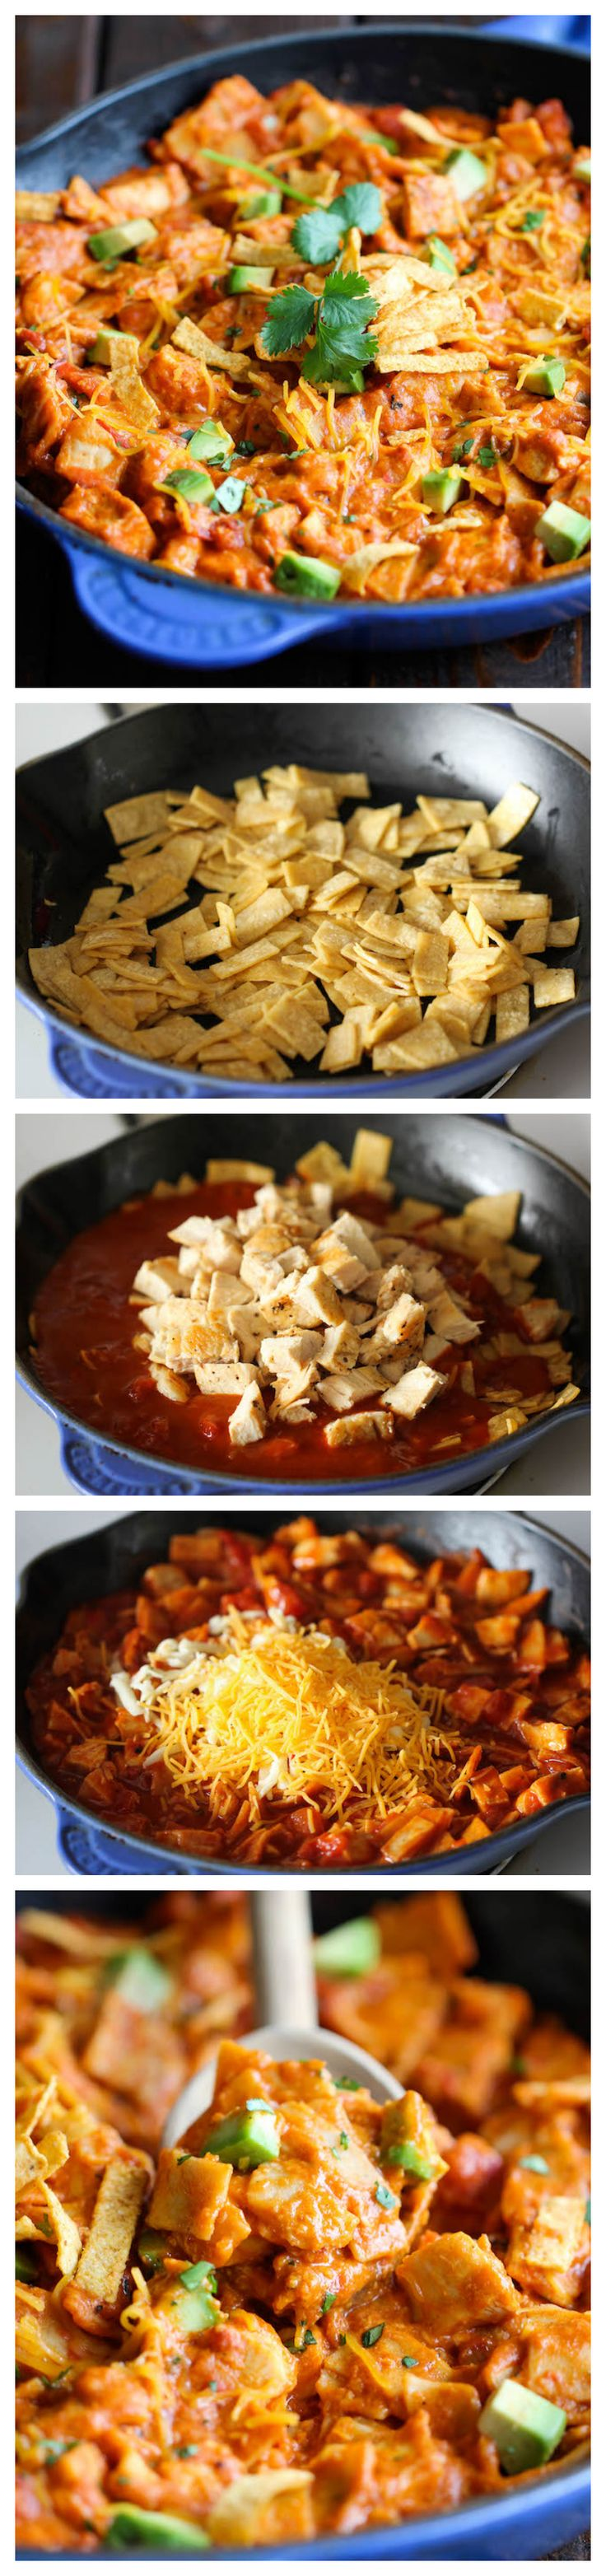 Chicken Enchilada Skillet - An easy, no-fuss, 30 min cheesy skillet dish that the whole family will love! @Chung-Ah Rhee